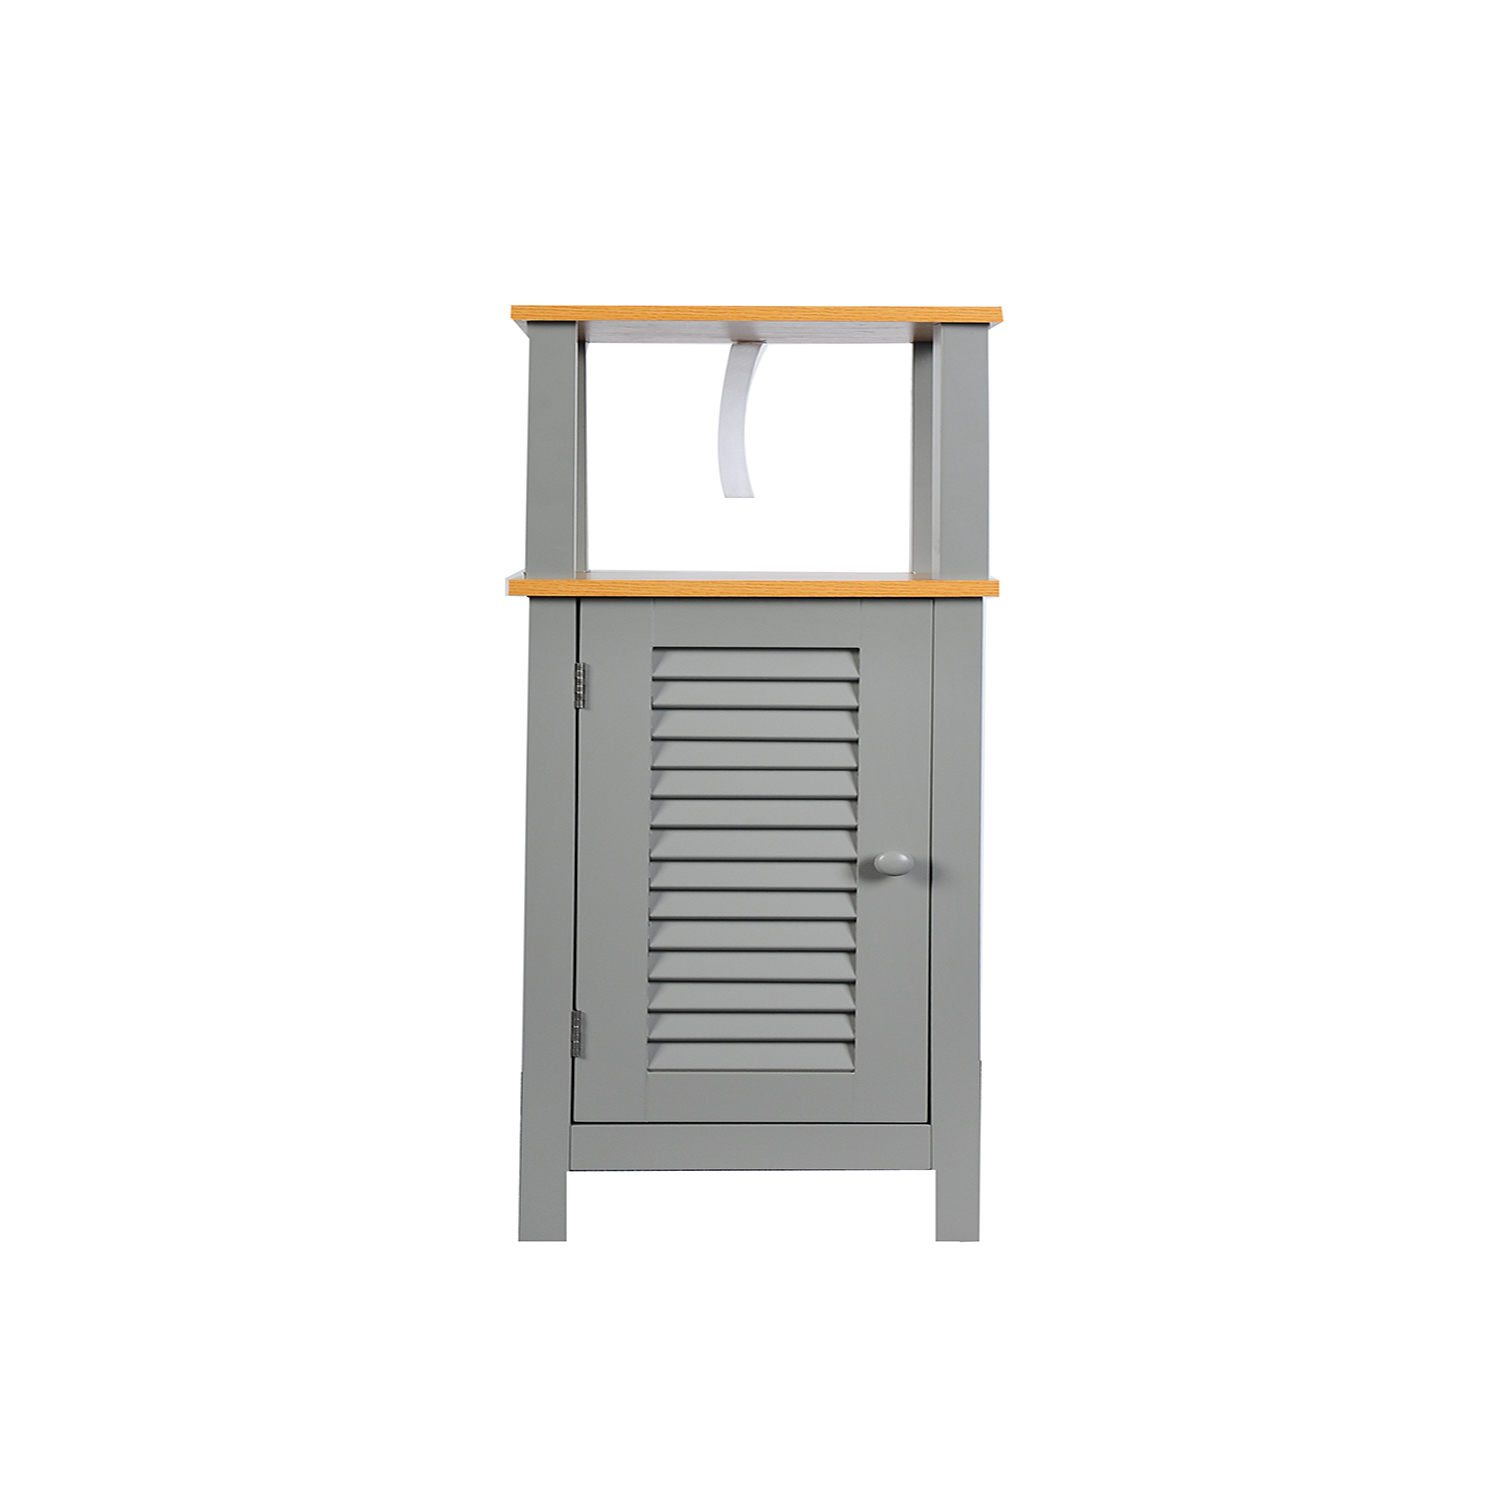 Darcy Storage Cabinet Door W/Shelf W30 x D30 x H87